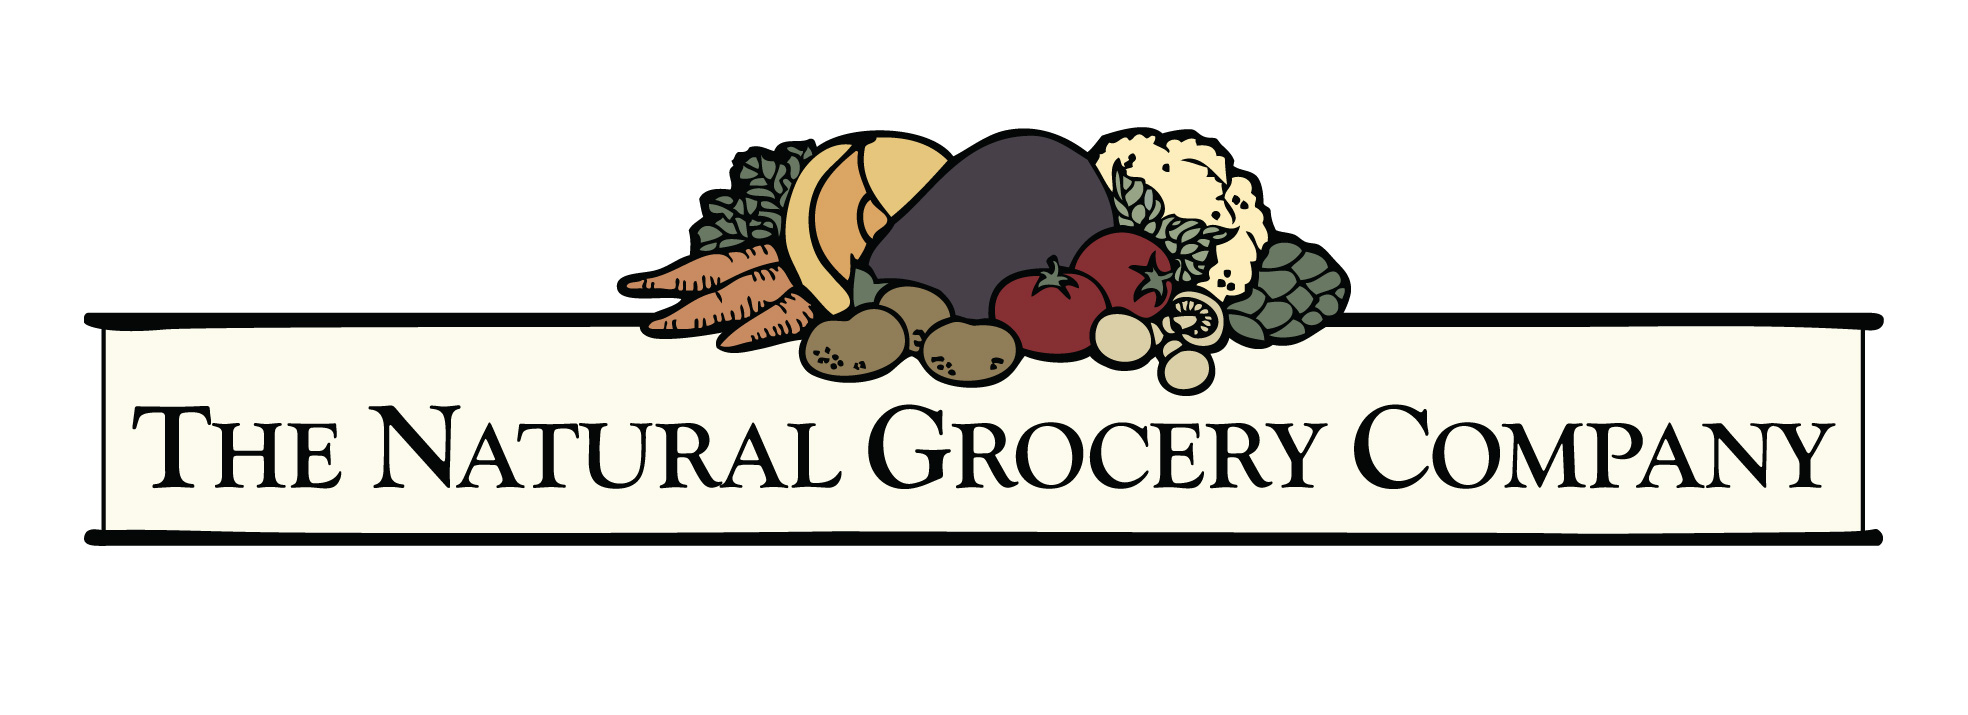 The Natural Grocery Company.jpg